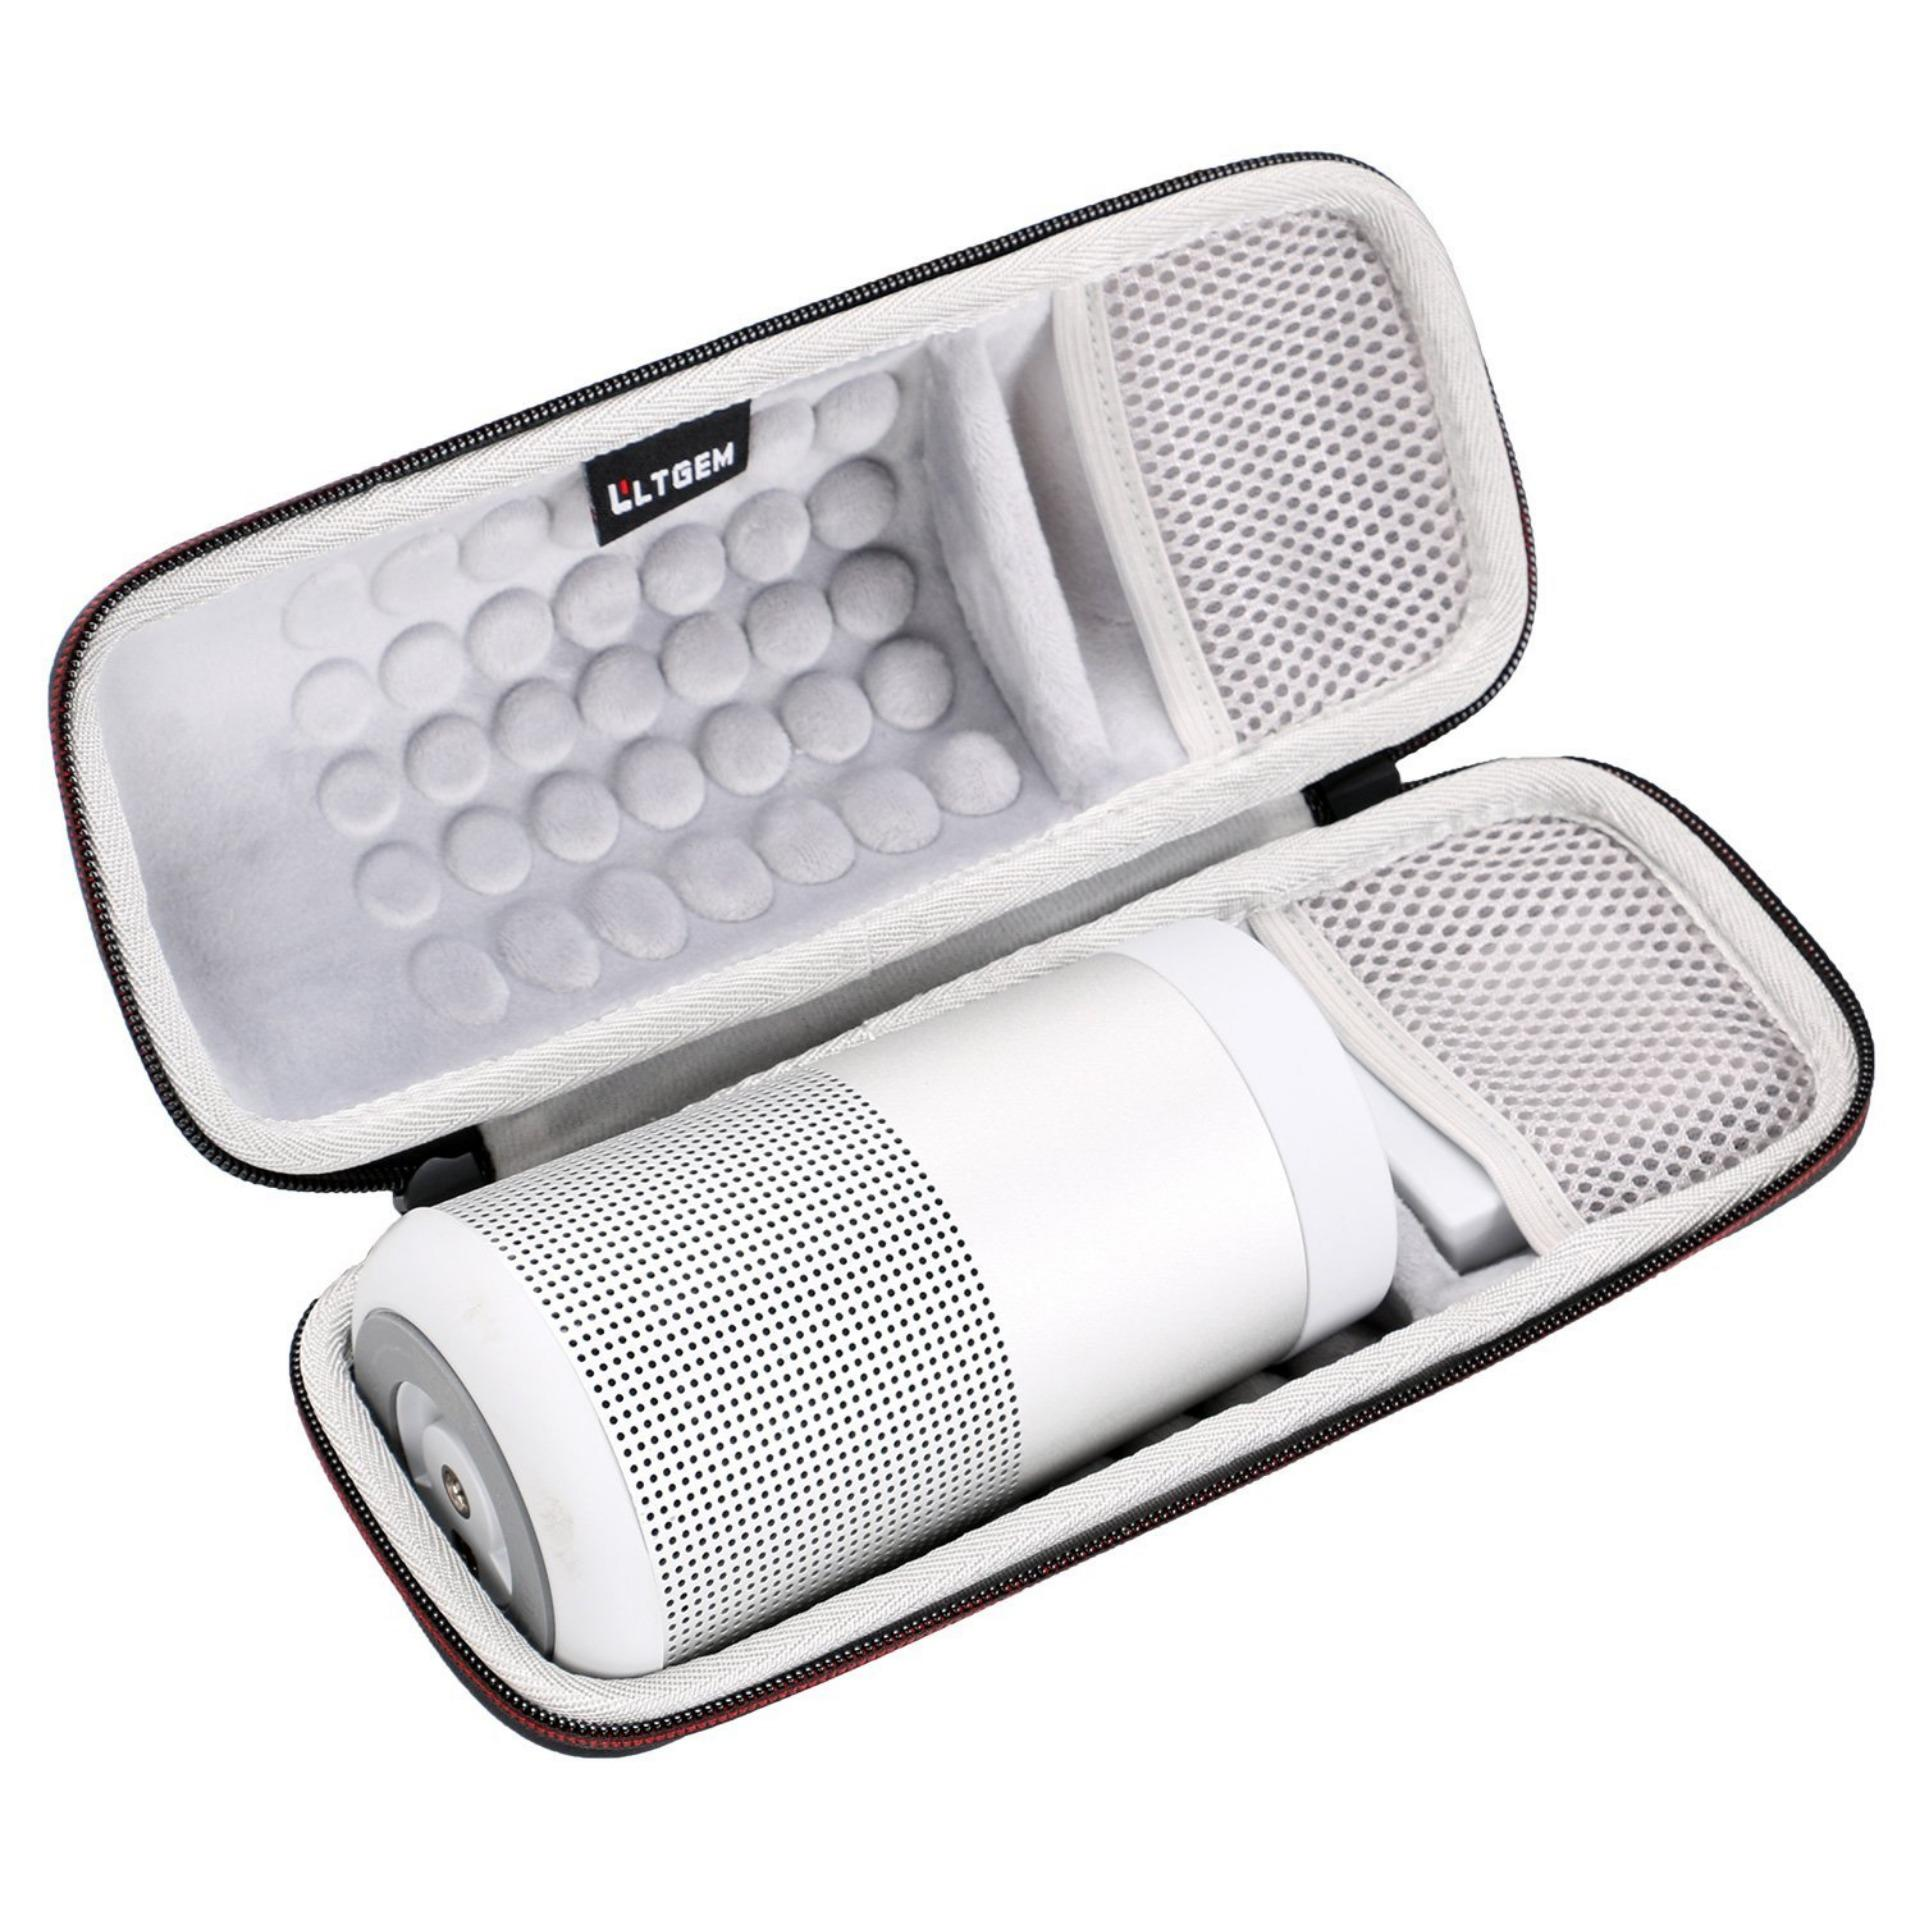 The Cheapest Ltgem Portable Hard Eva Case Protective Storage Carrying Bag Case For Revolve Bluetooth Speaker With Mesh Pocket Intl Online